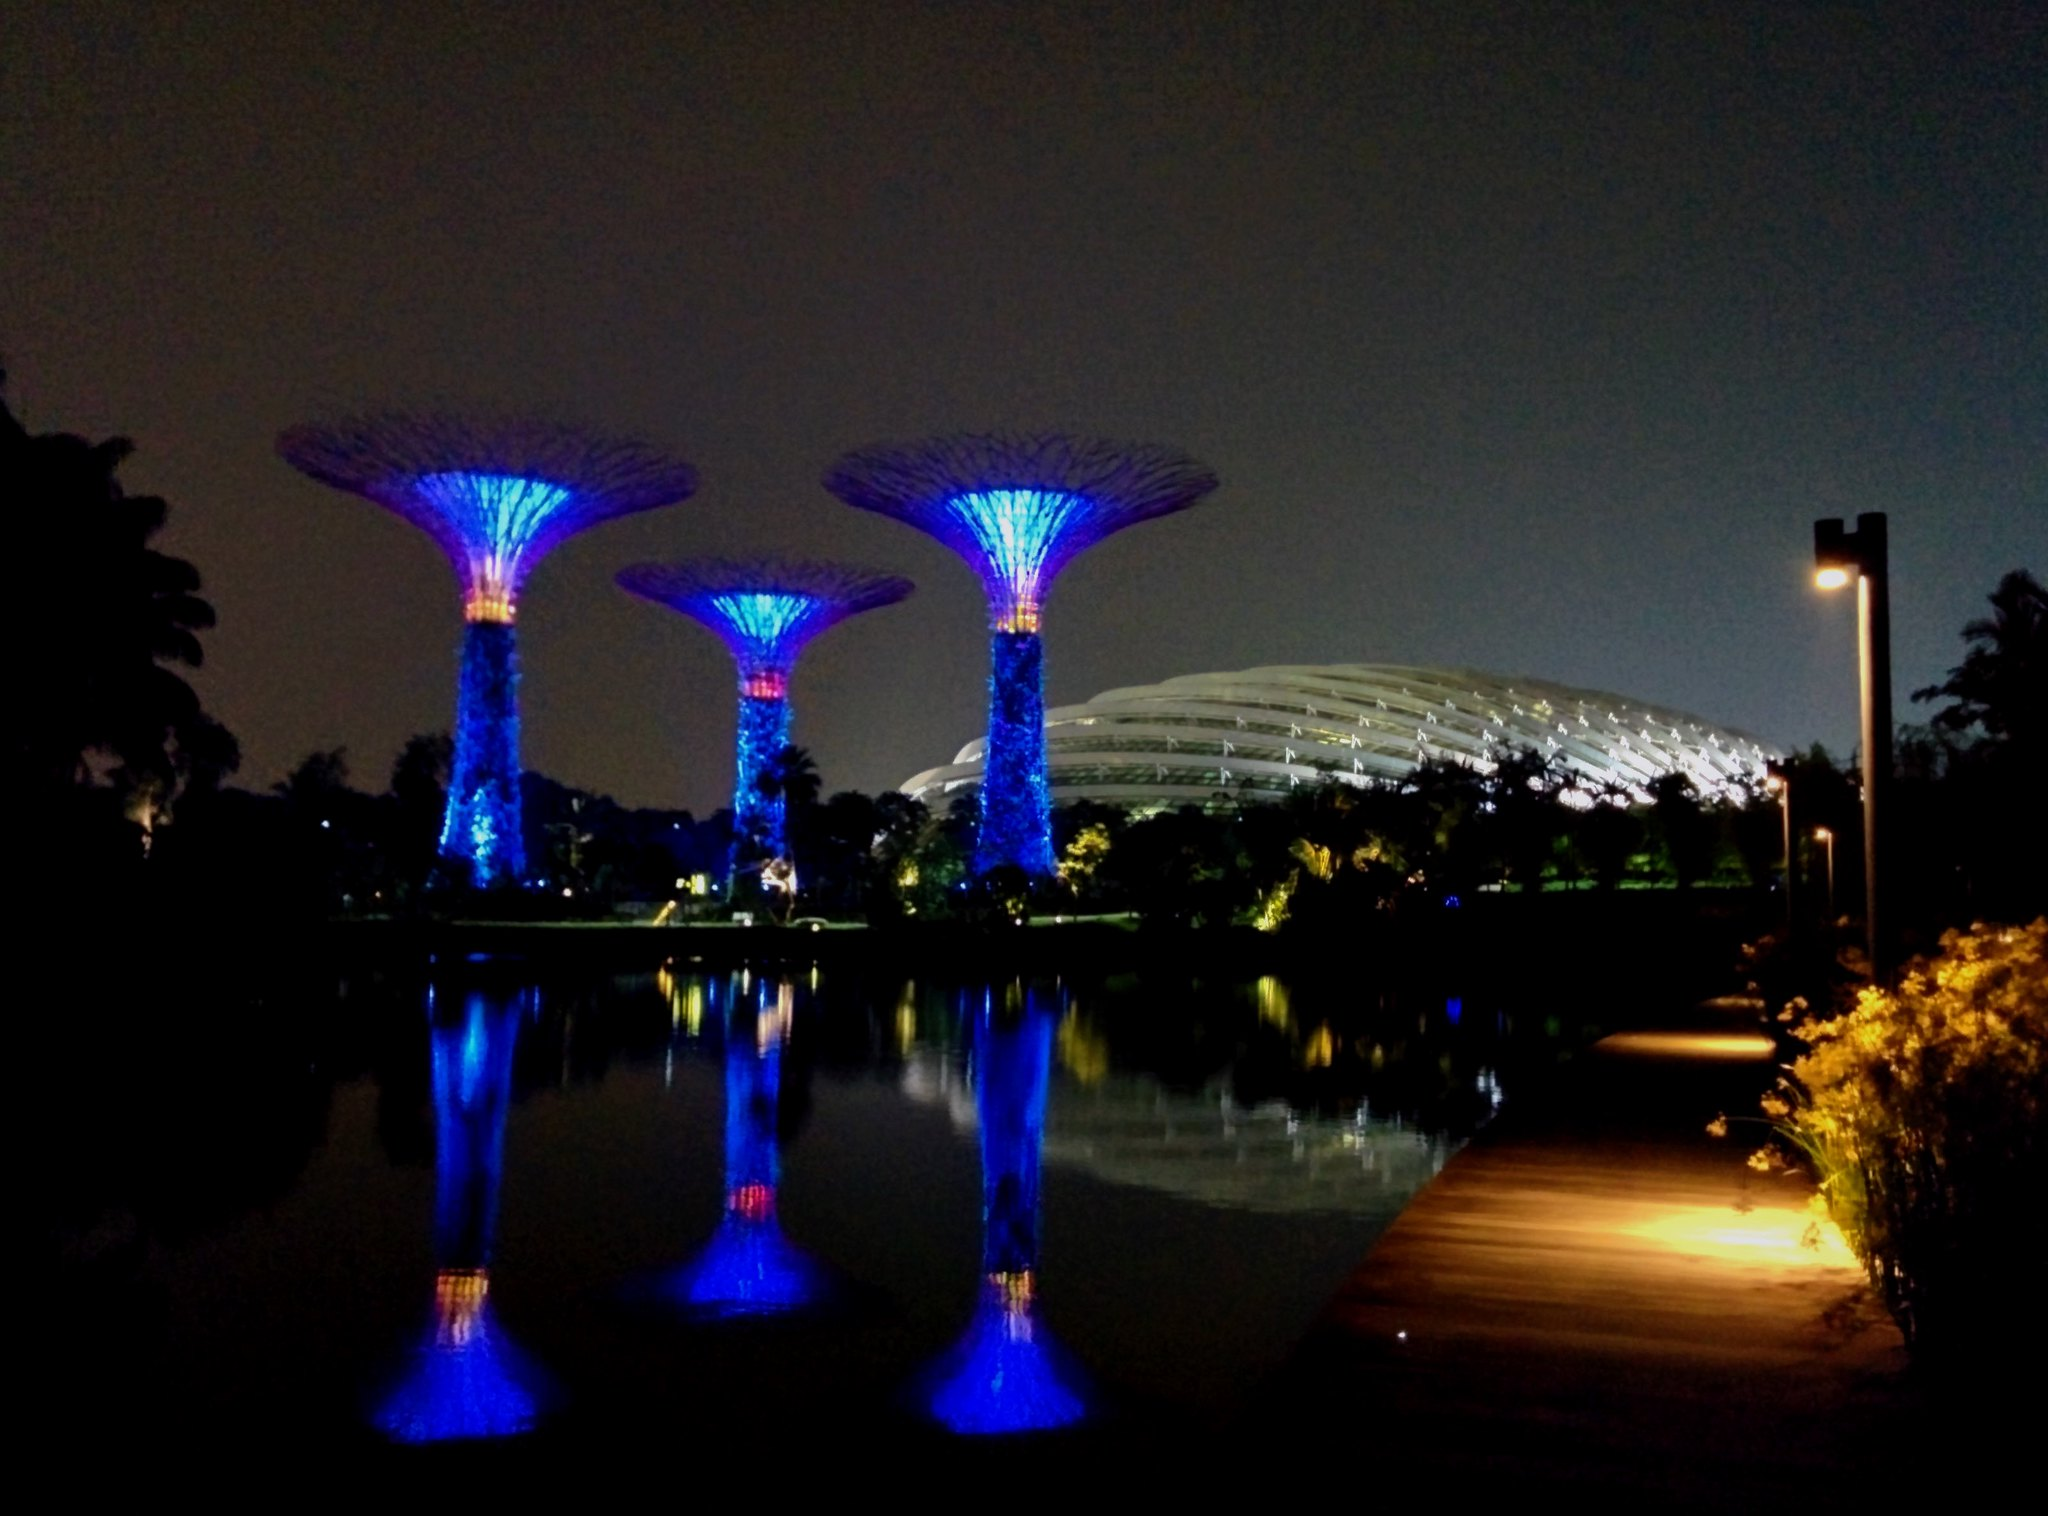 The supertrees lit up at night